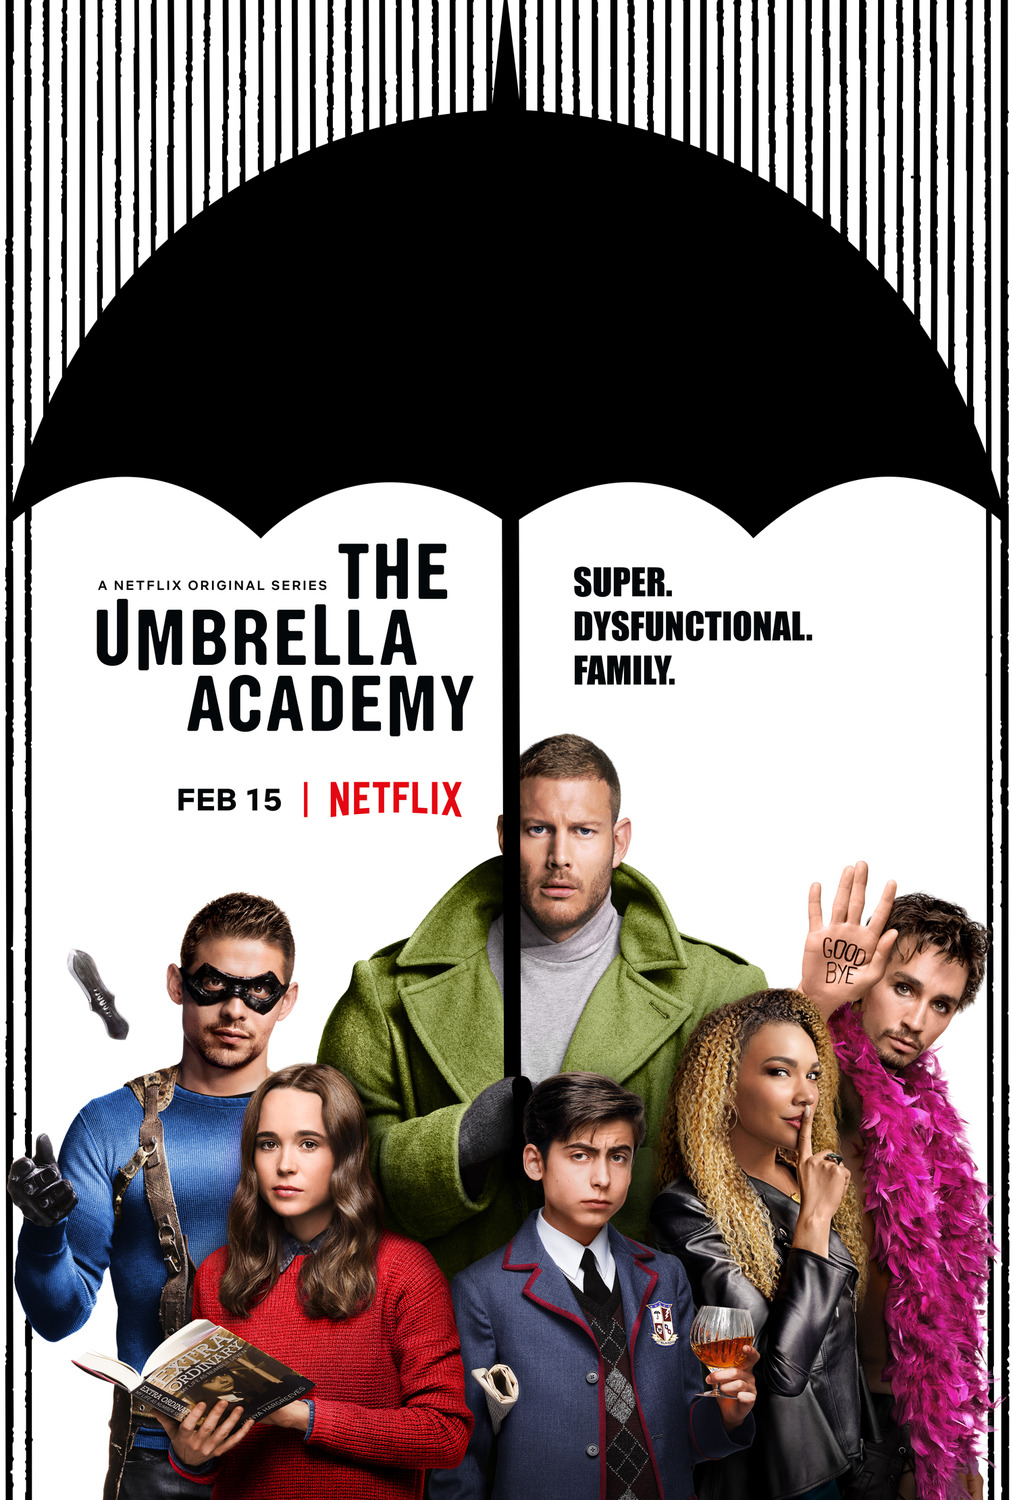 The Umbrella Academy review: heartwarming dysfunction